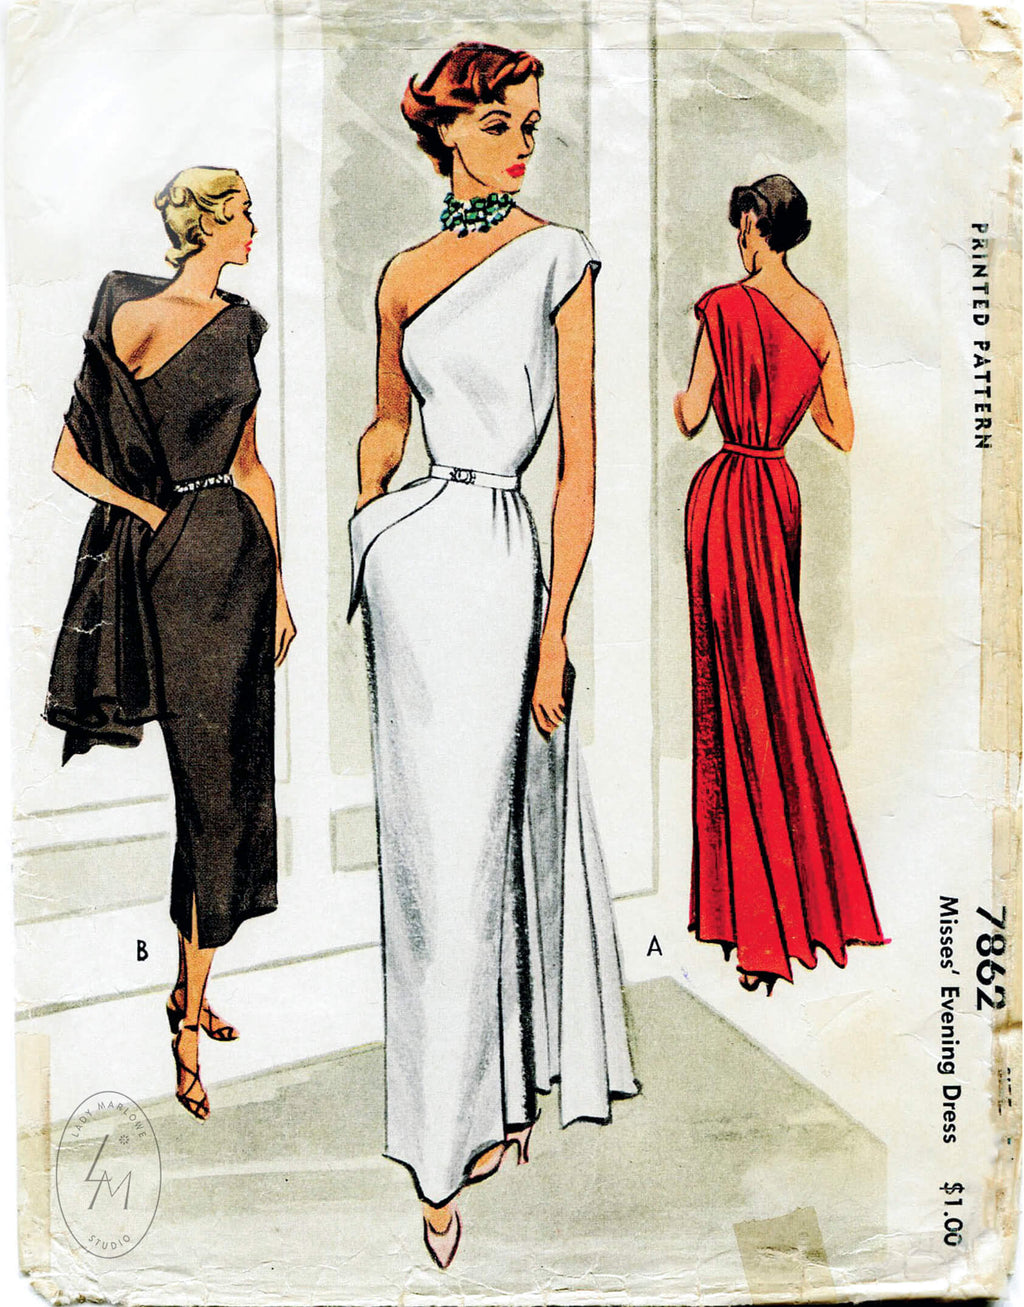 McCall 7862 1950s evening gown vintage sewing pattern